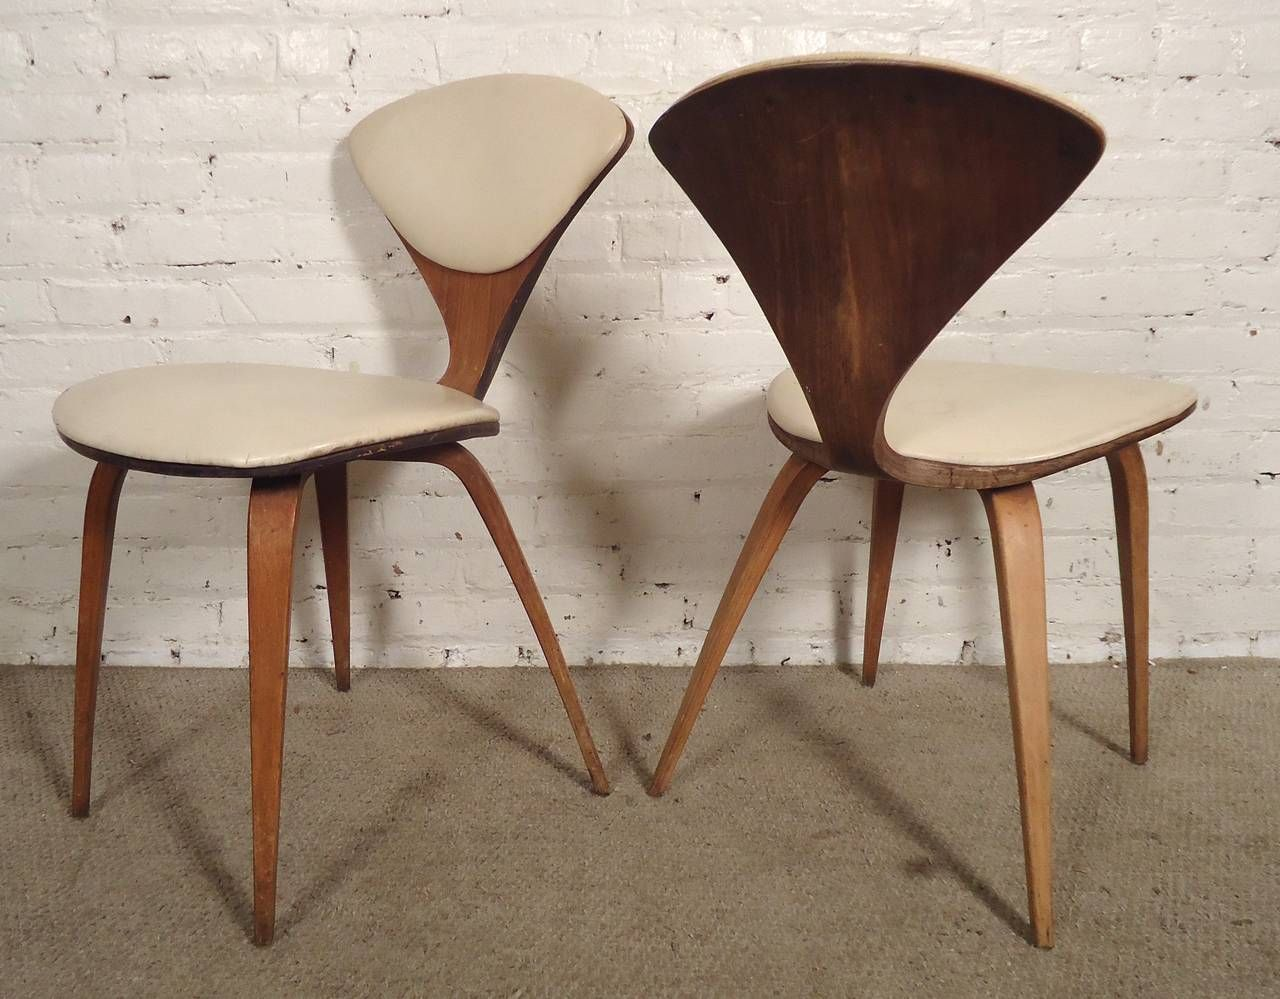 pair of norman cherner chairs by plycraft bentwood chairs vintage designs and mid century